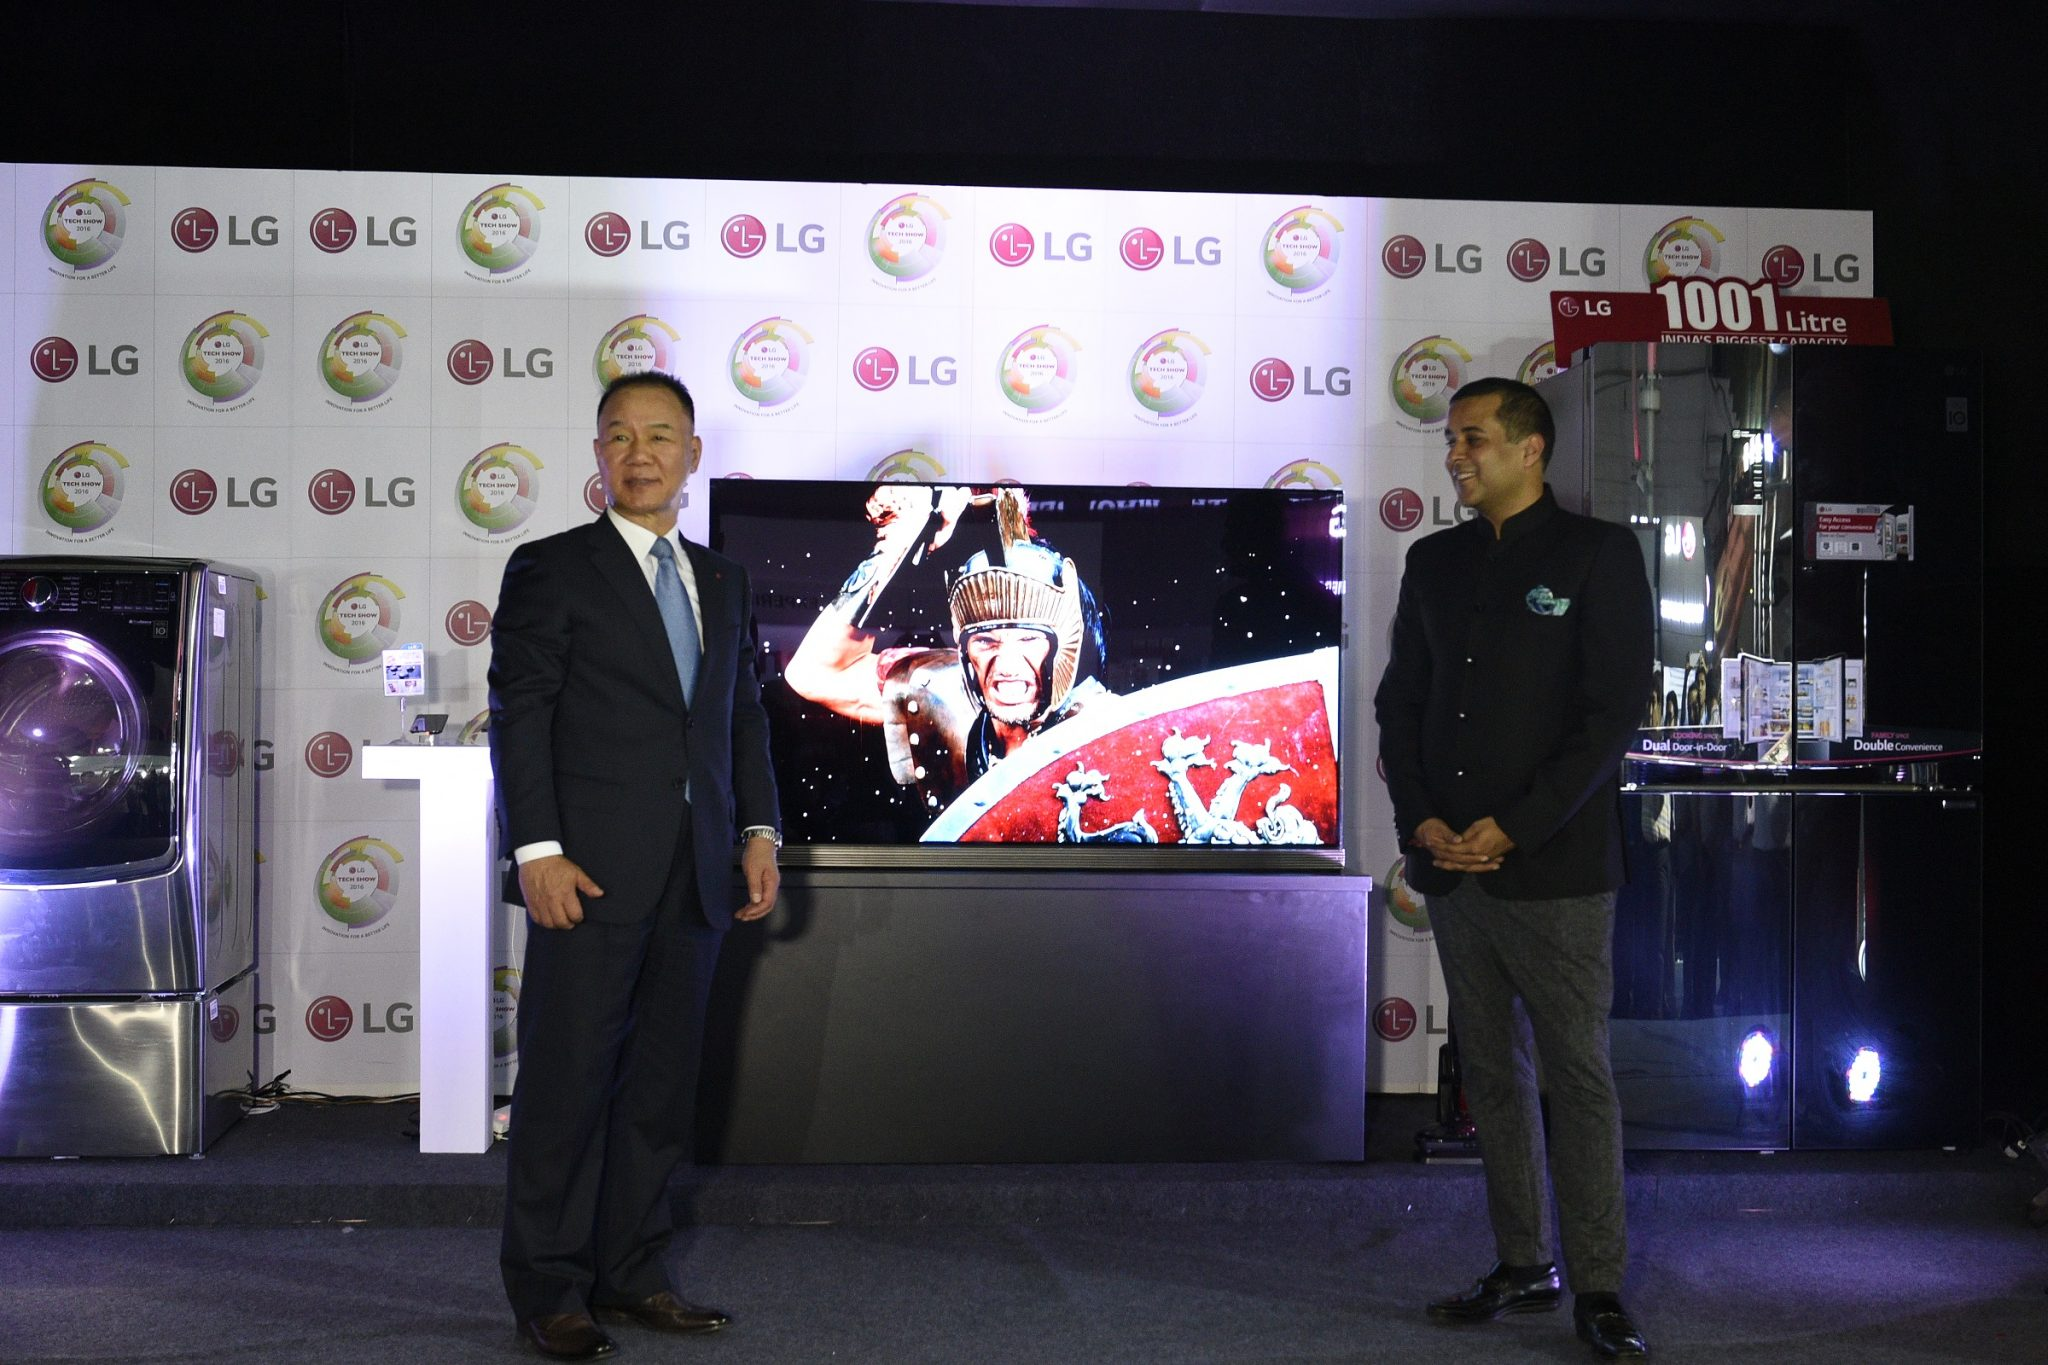 LG showcases its 'Signature Series' at Tech Show 2016